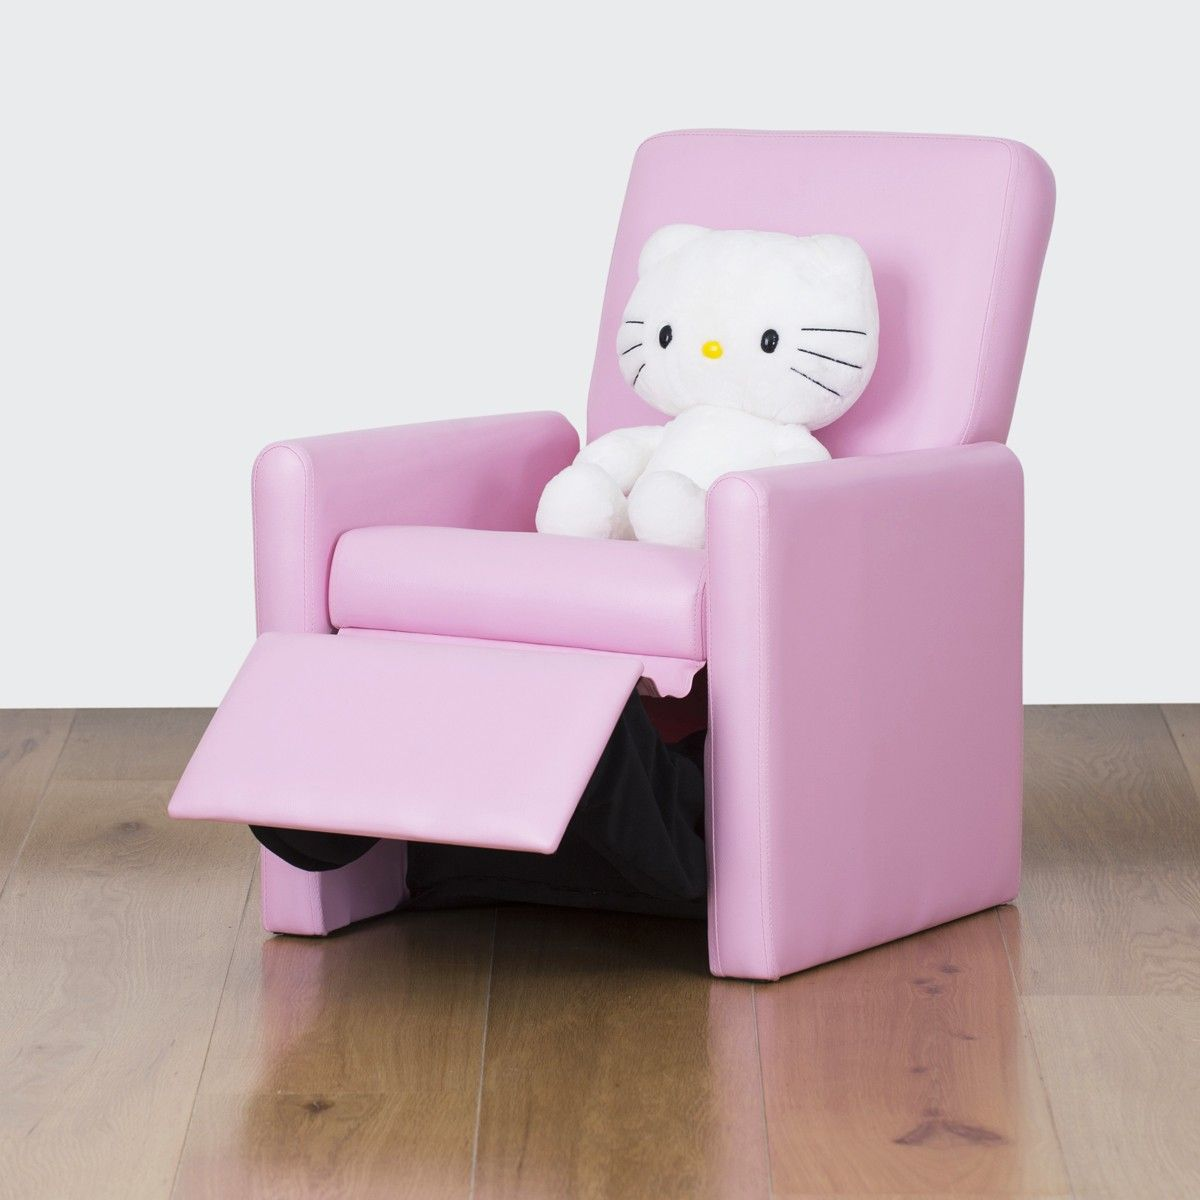 Watoto Kids Recliner Chair - Bubblegum Pink | $125.00 : childrens recliner chairs - islam-shia.org